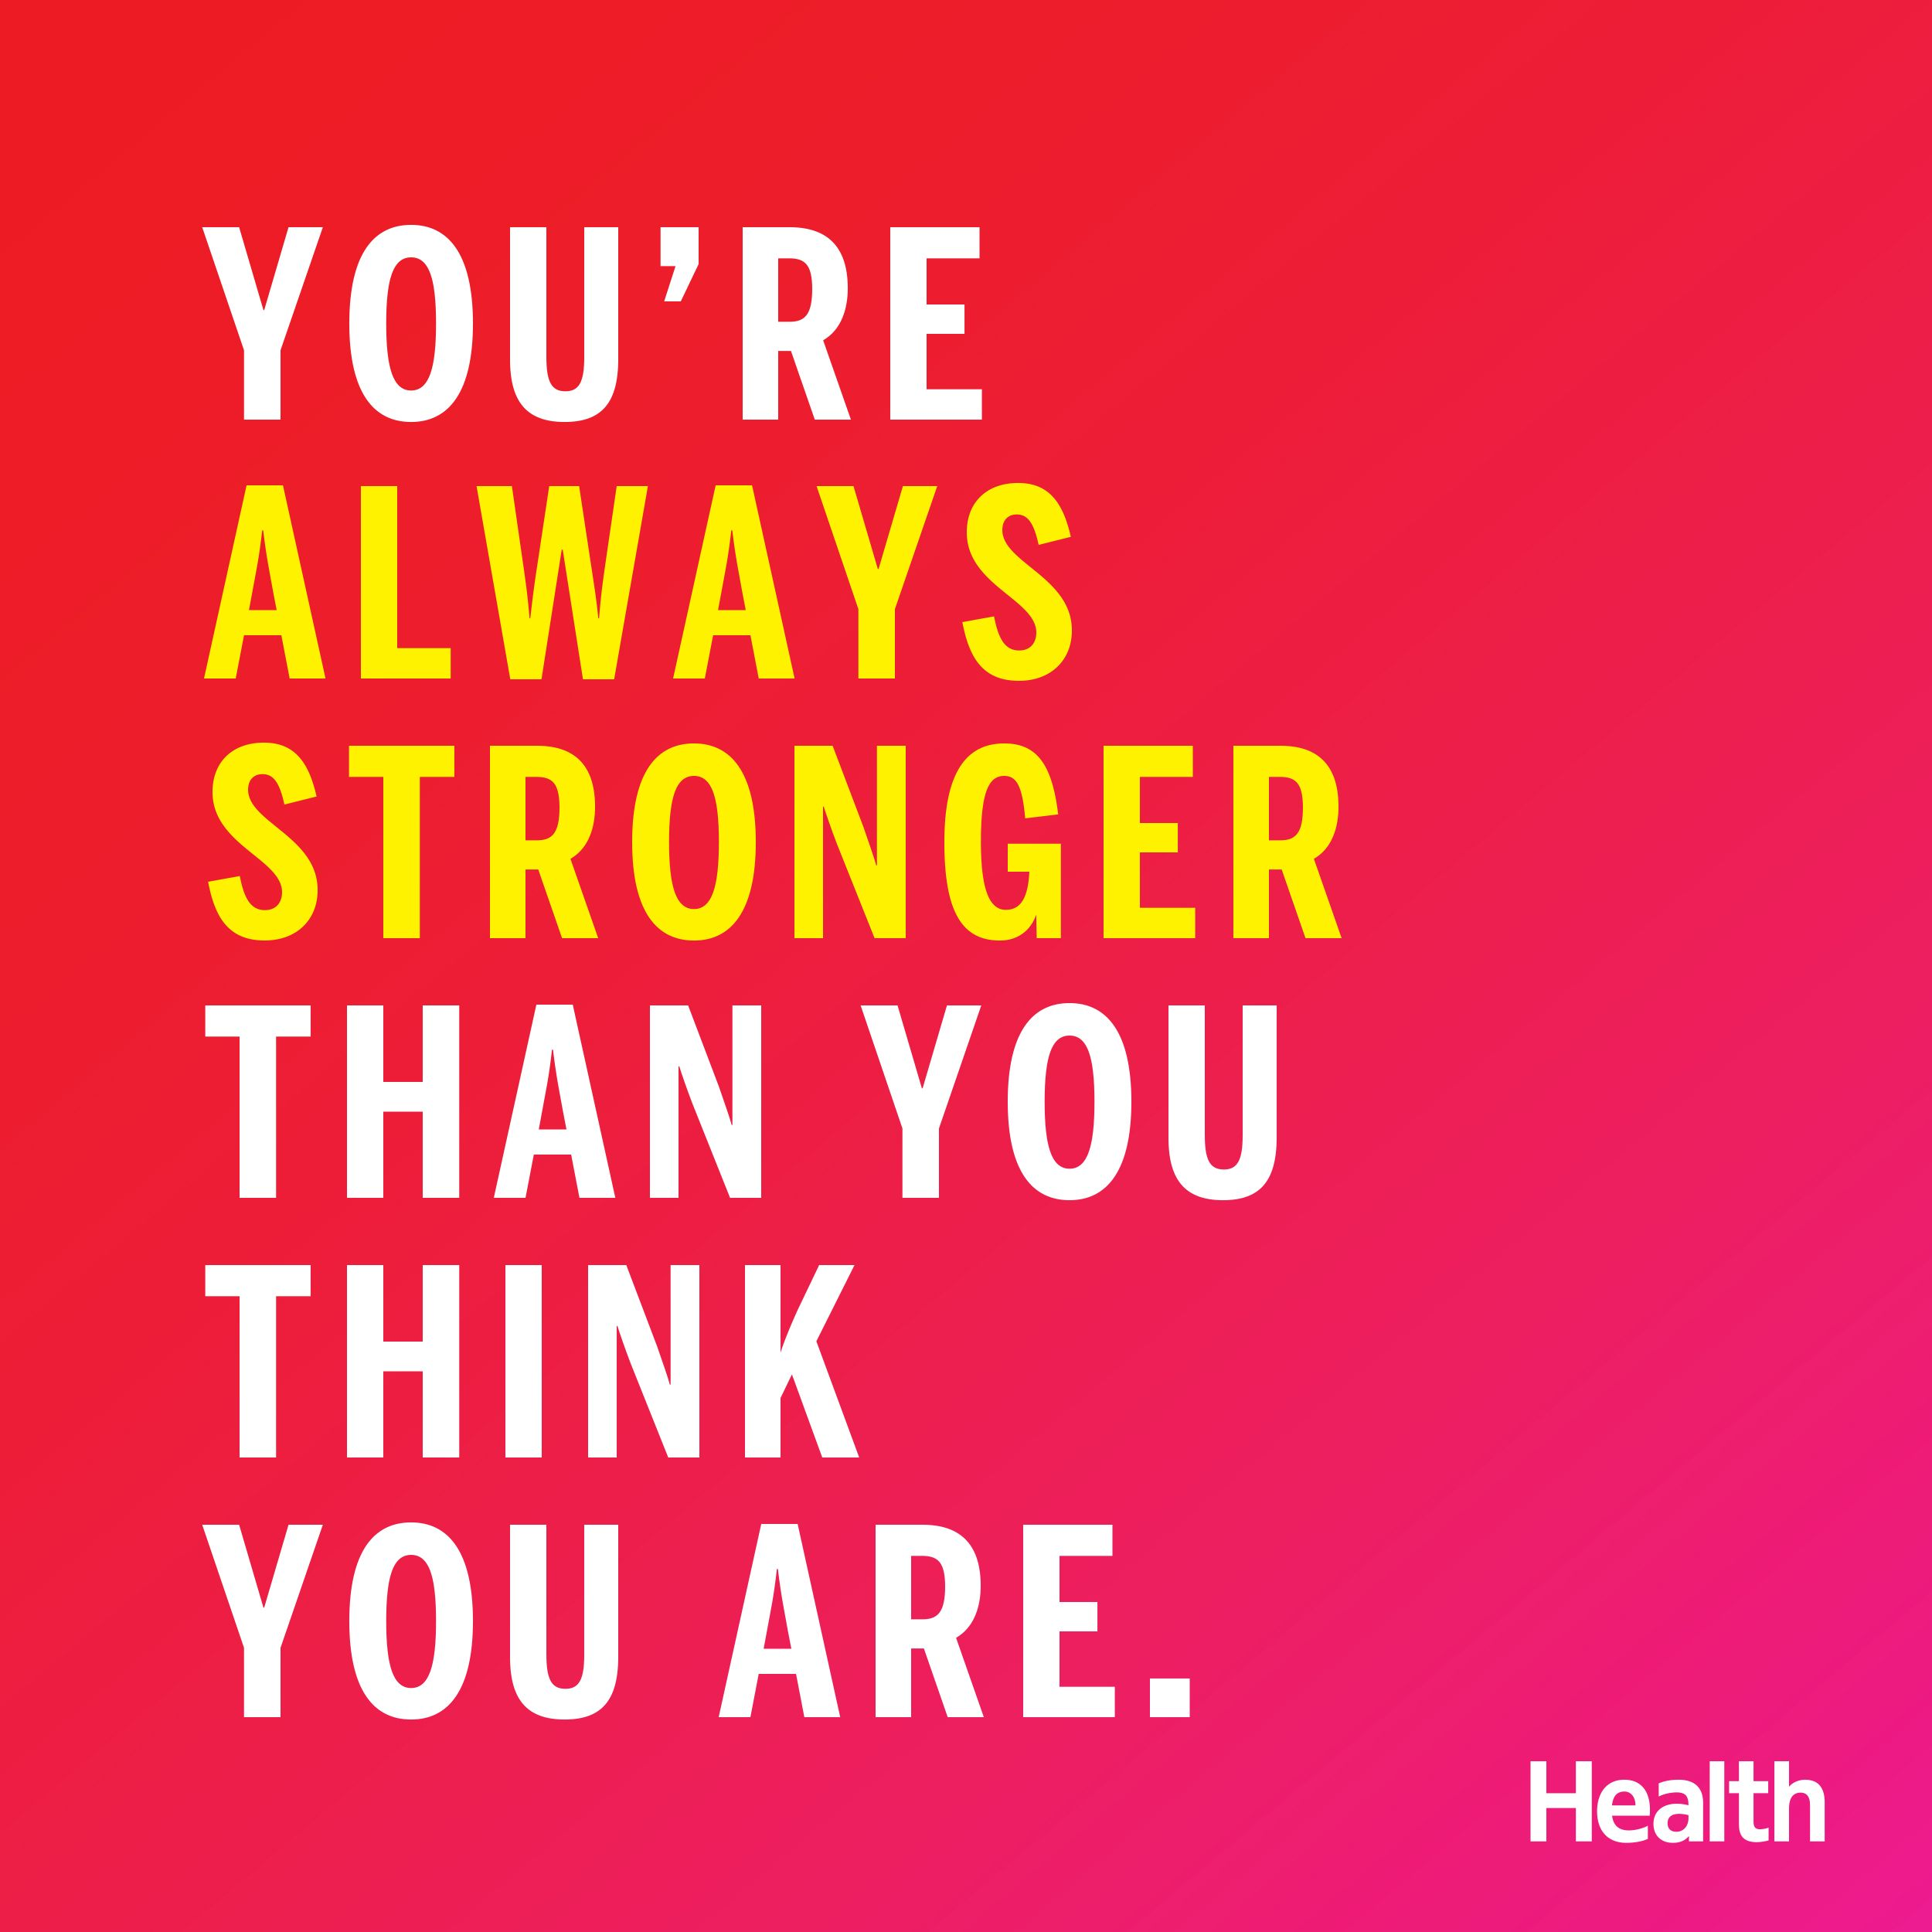 Stay Fit Motivation Quotes: 24 Motivational Quotes For Fitness And Weight Loss